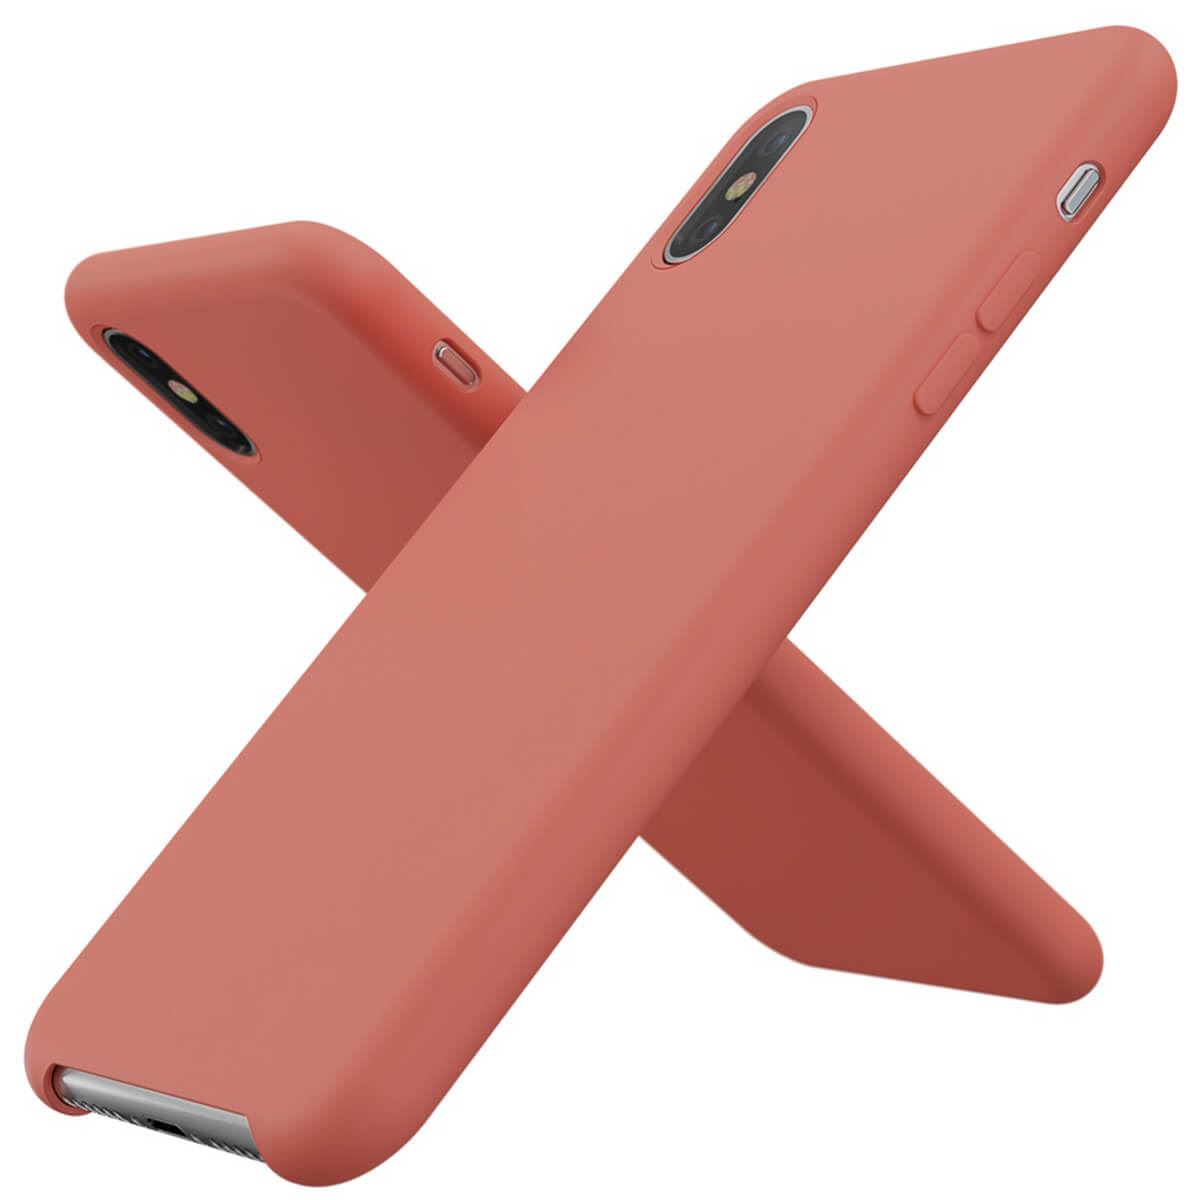 Liquid-Silicone-Phone-Case-For-Apple-iPhone-Soft-Shockproof-Matte-Back-Cover thumbnail 16